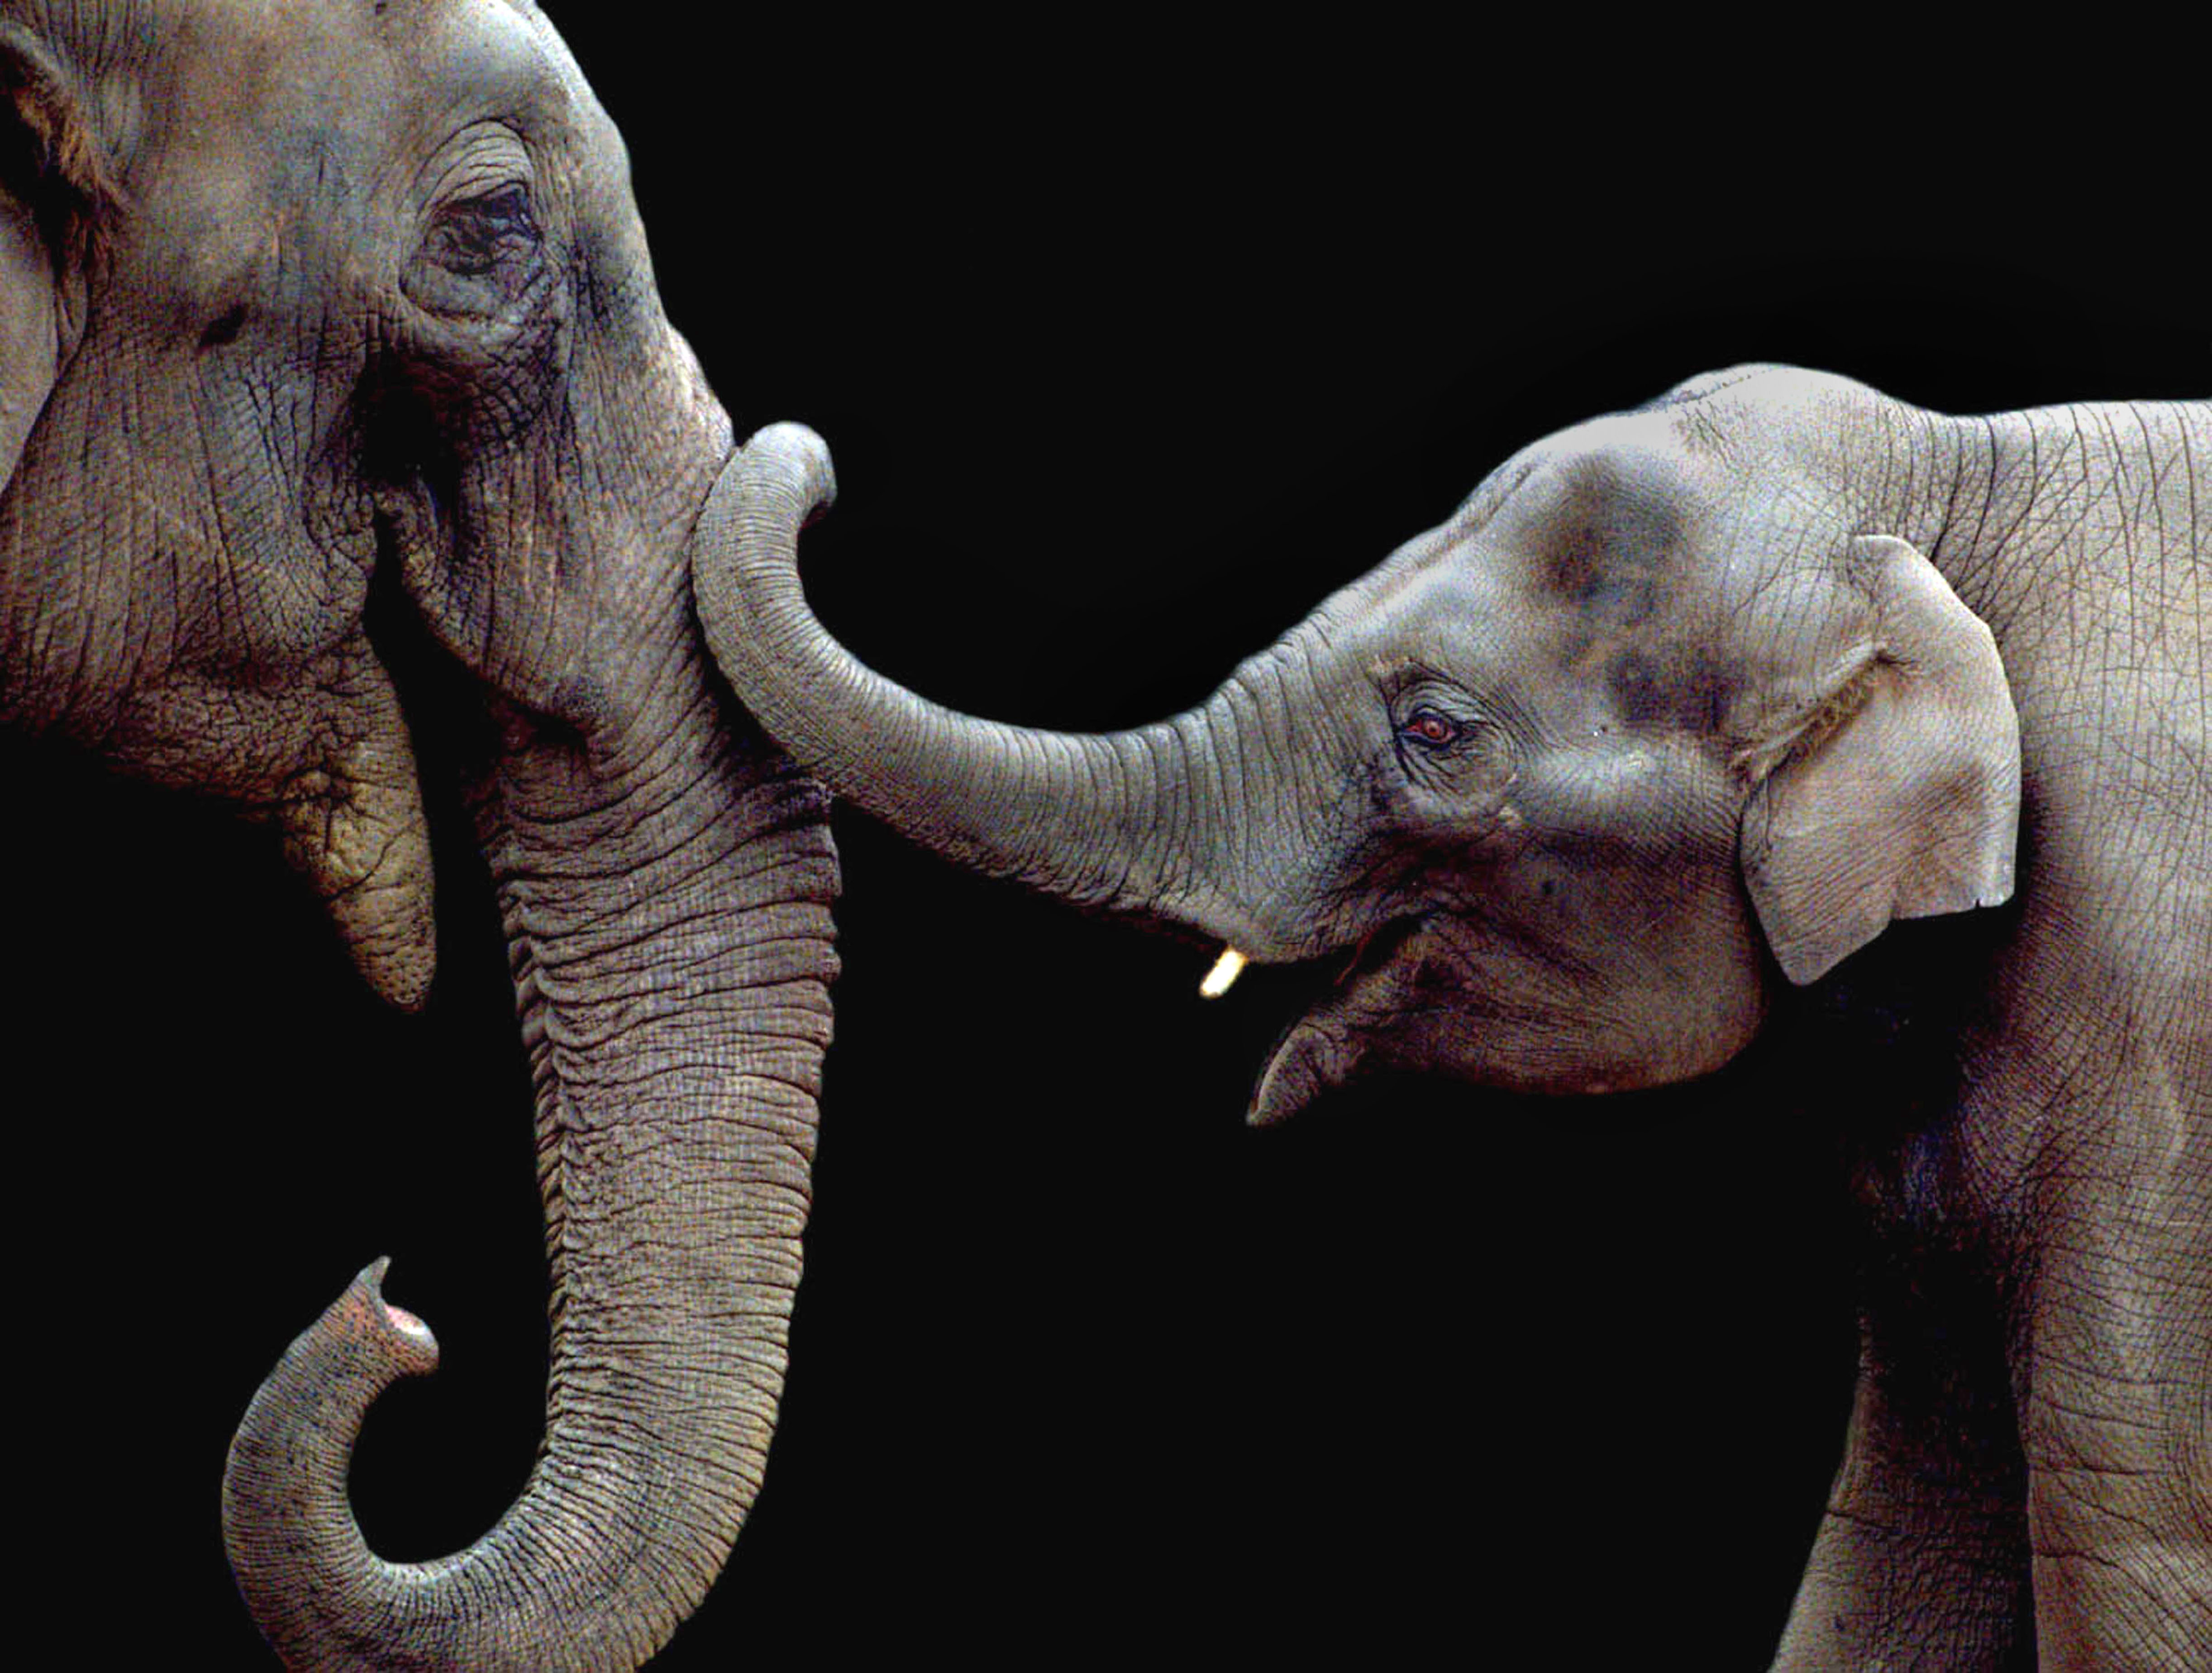 Elephant mother and child